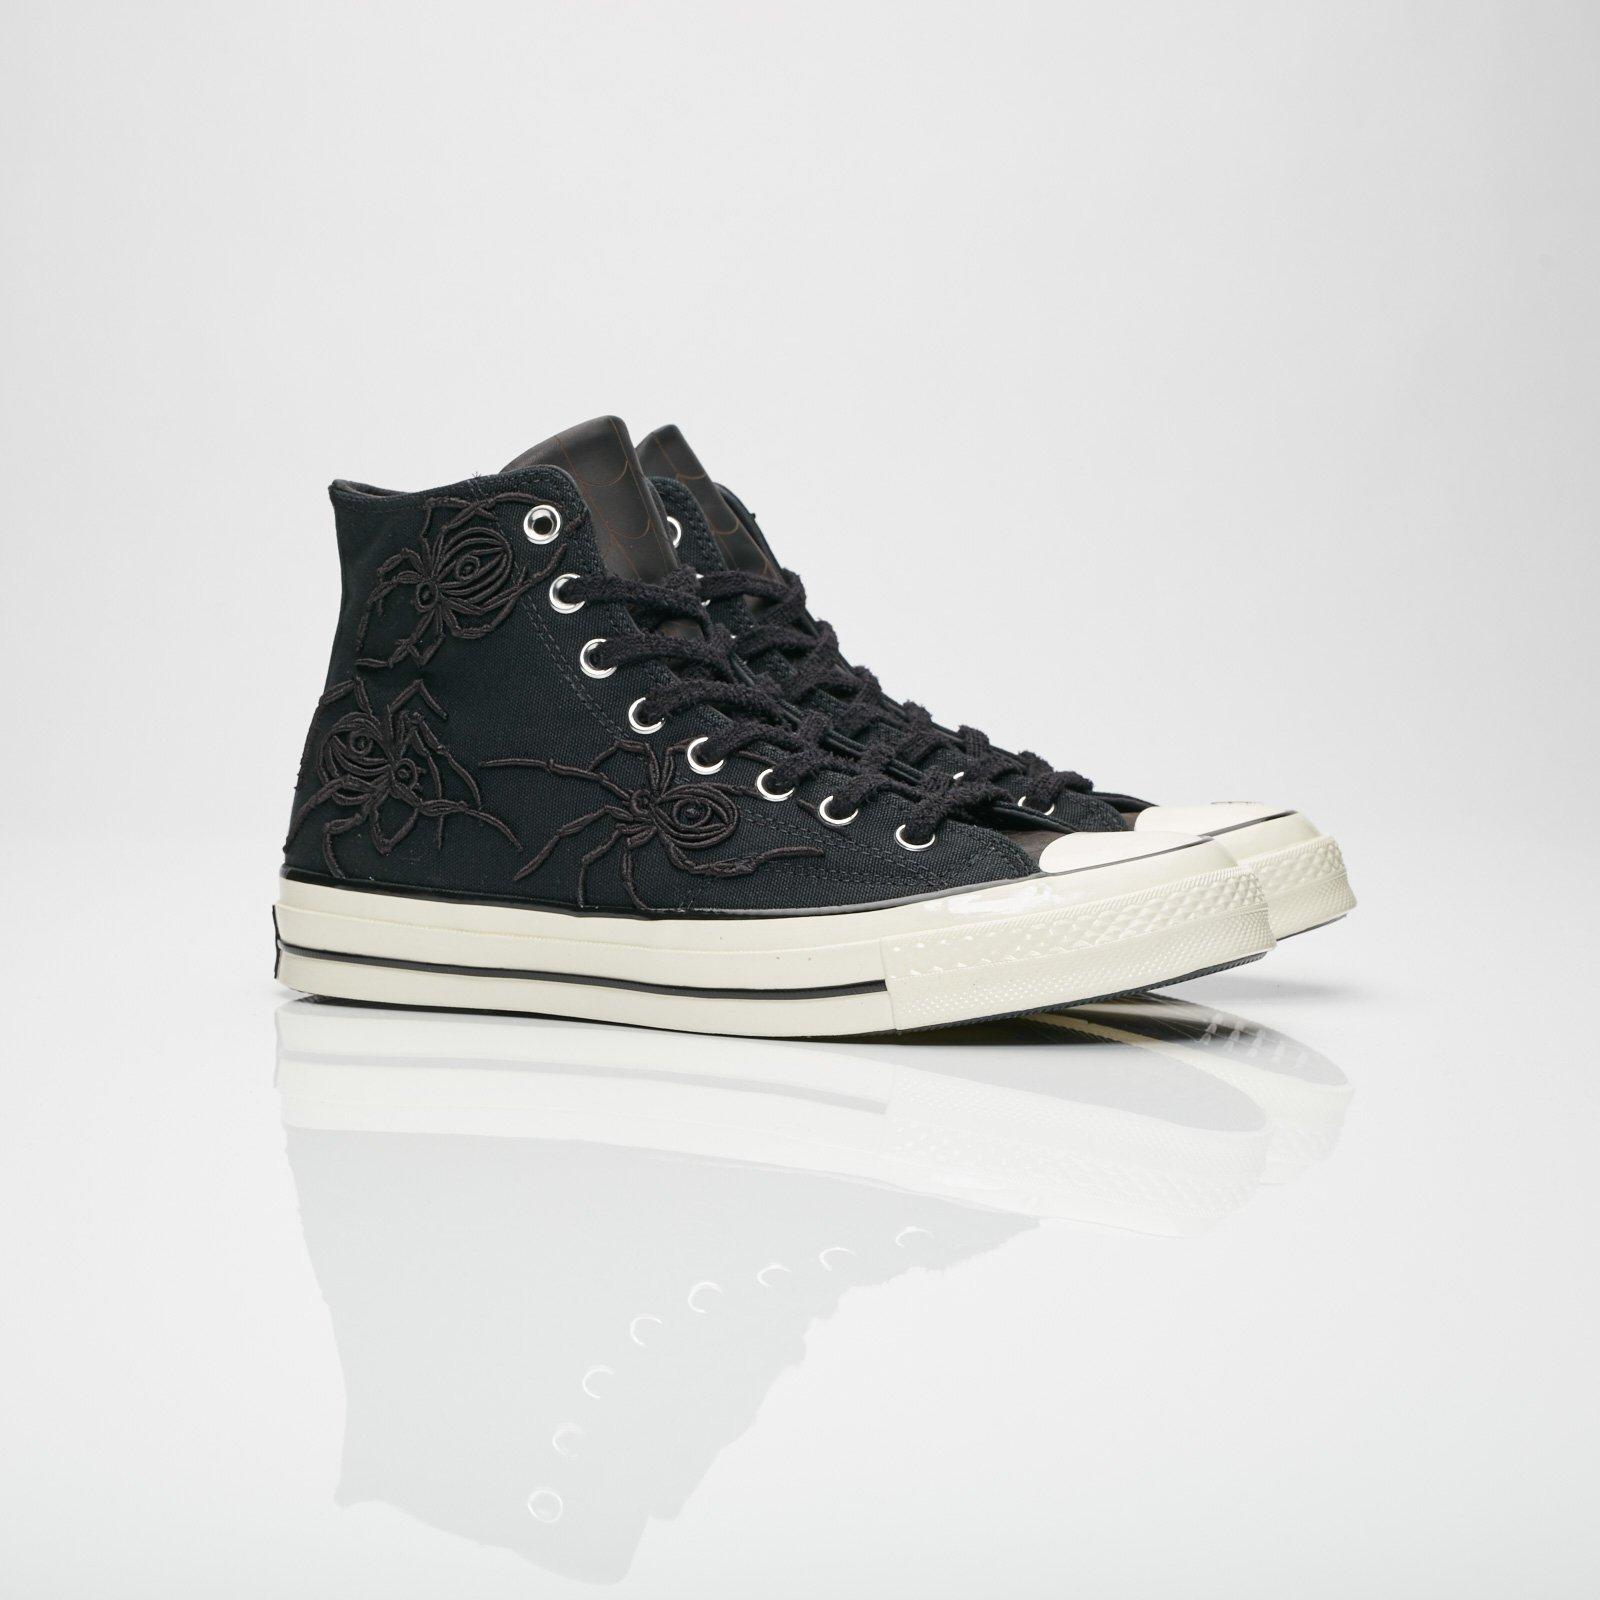 ALL SIZES CONVERSE CTAS 70 HI X DR. WOO LIMITED EDITION